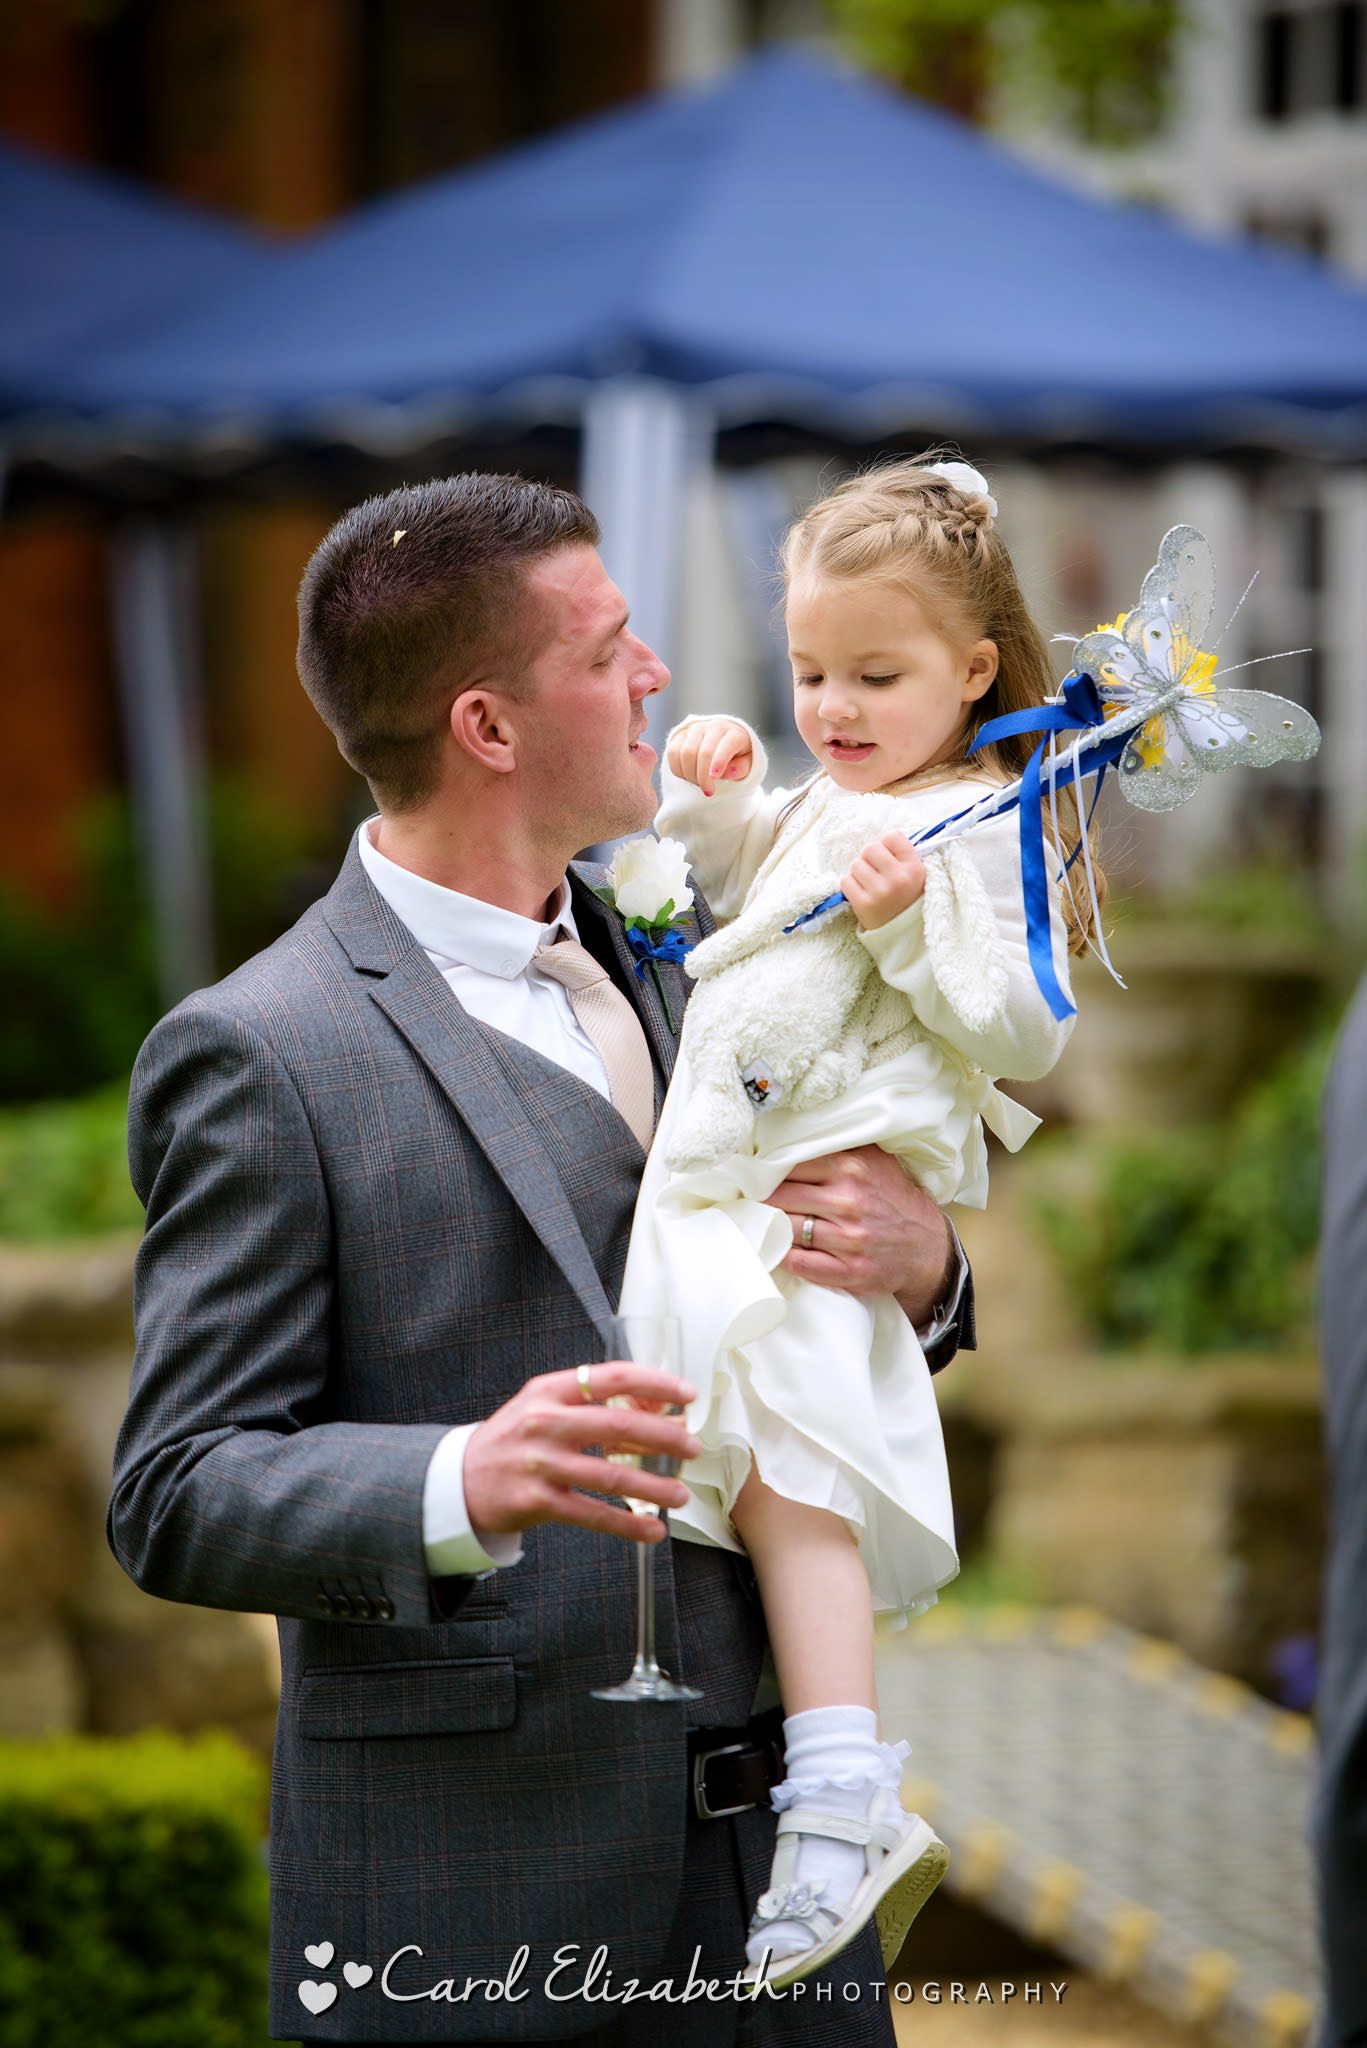 Documentary wedding photography in Oxfordshire